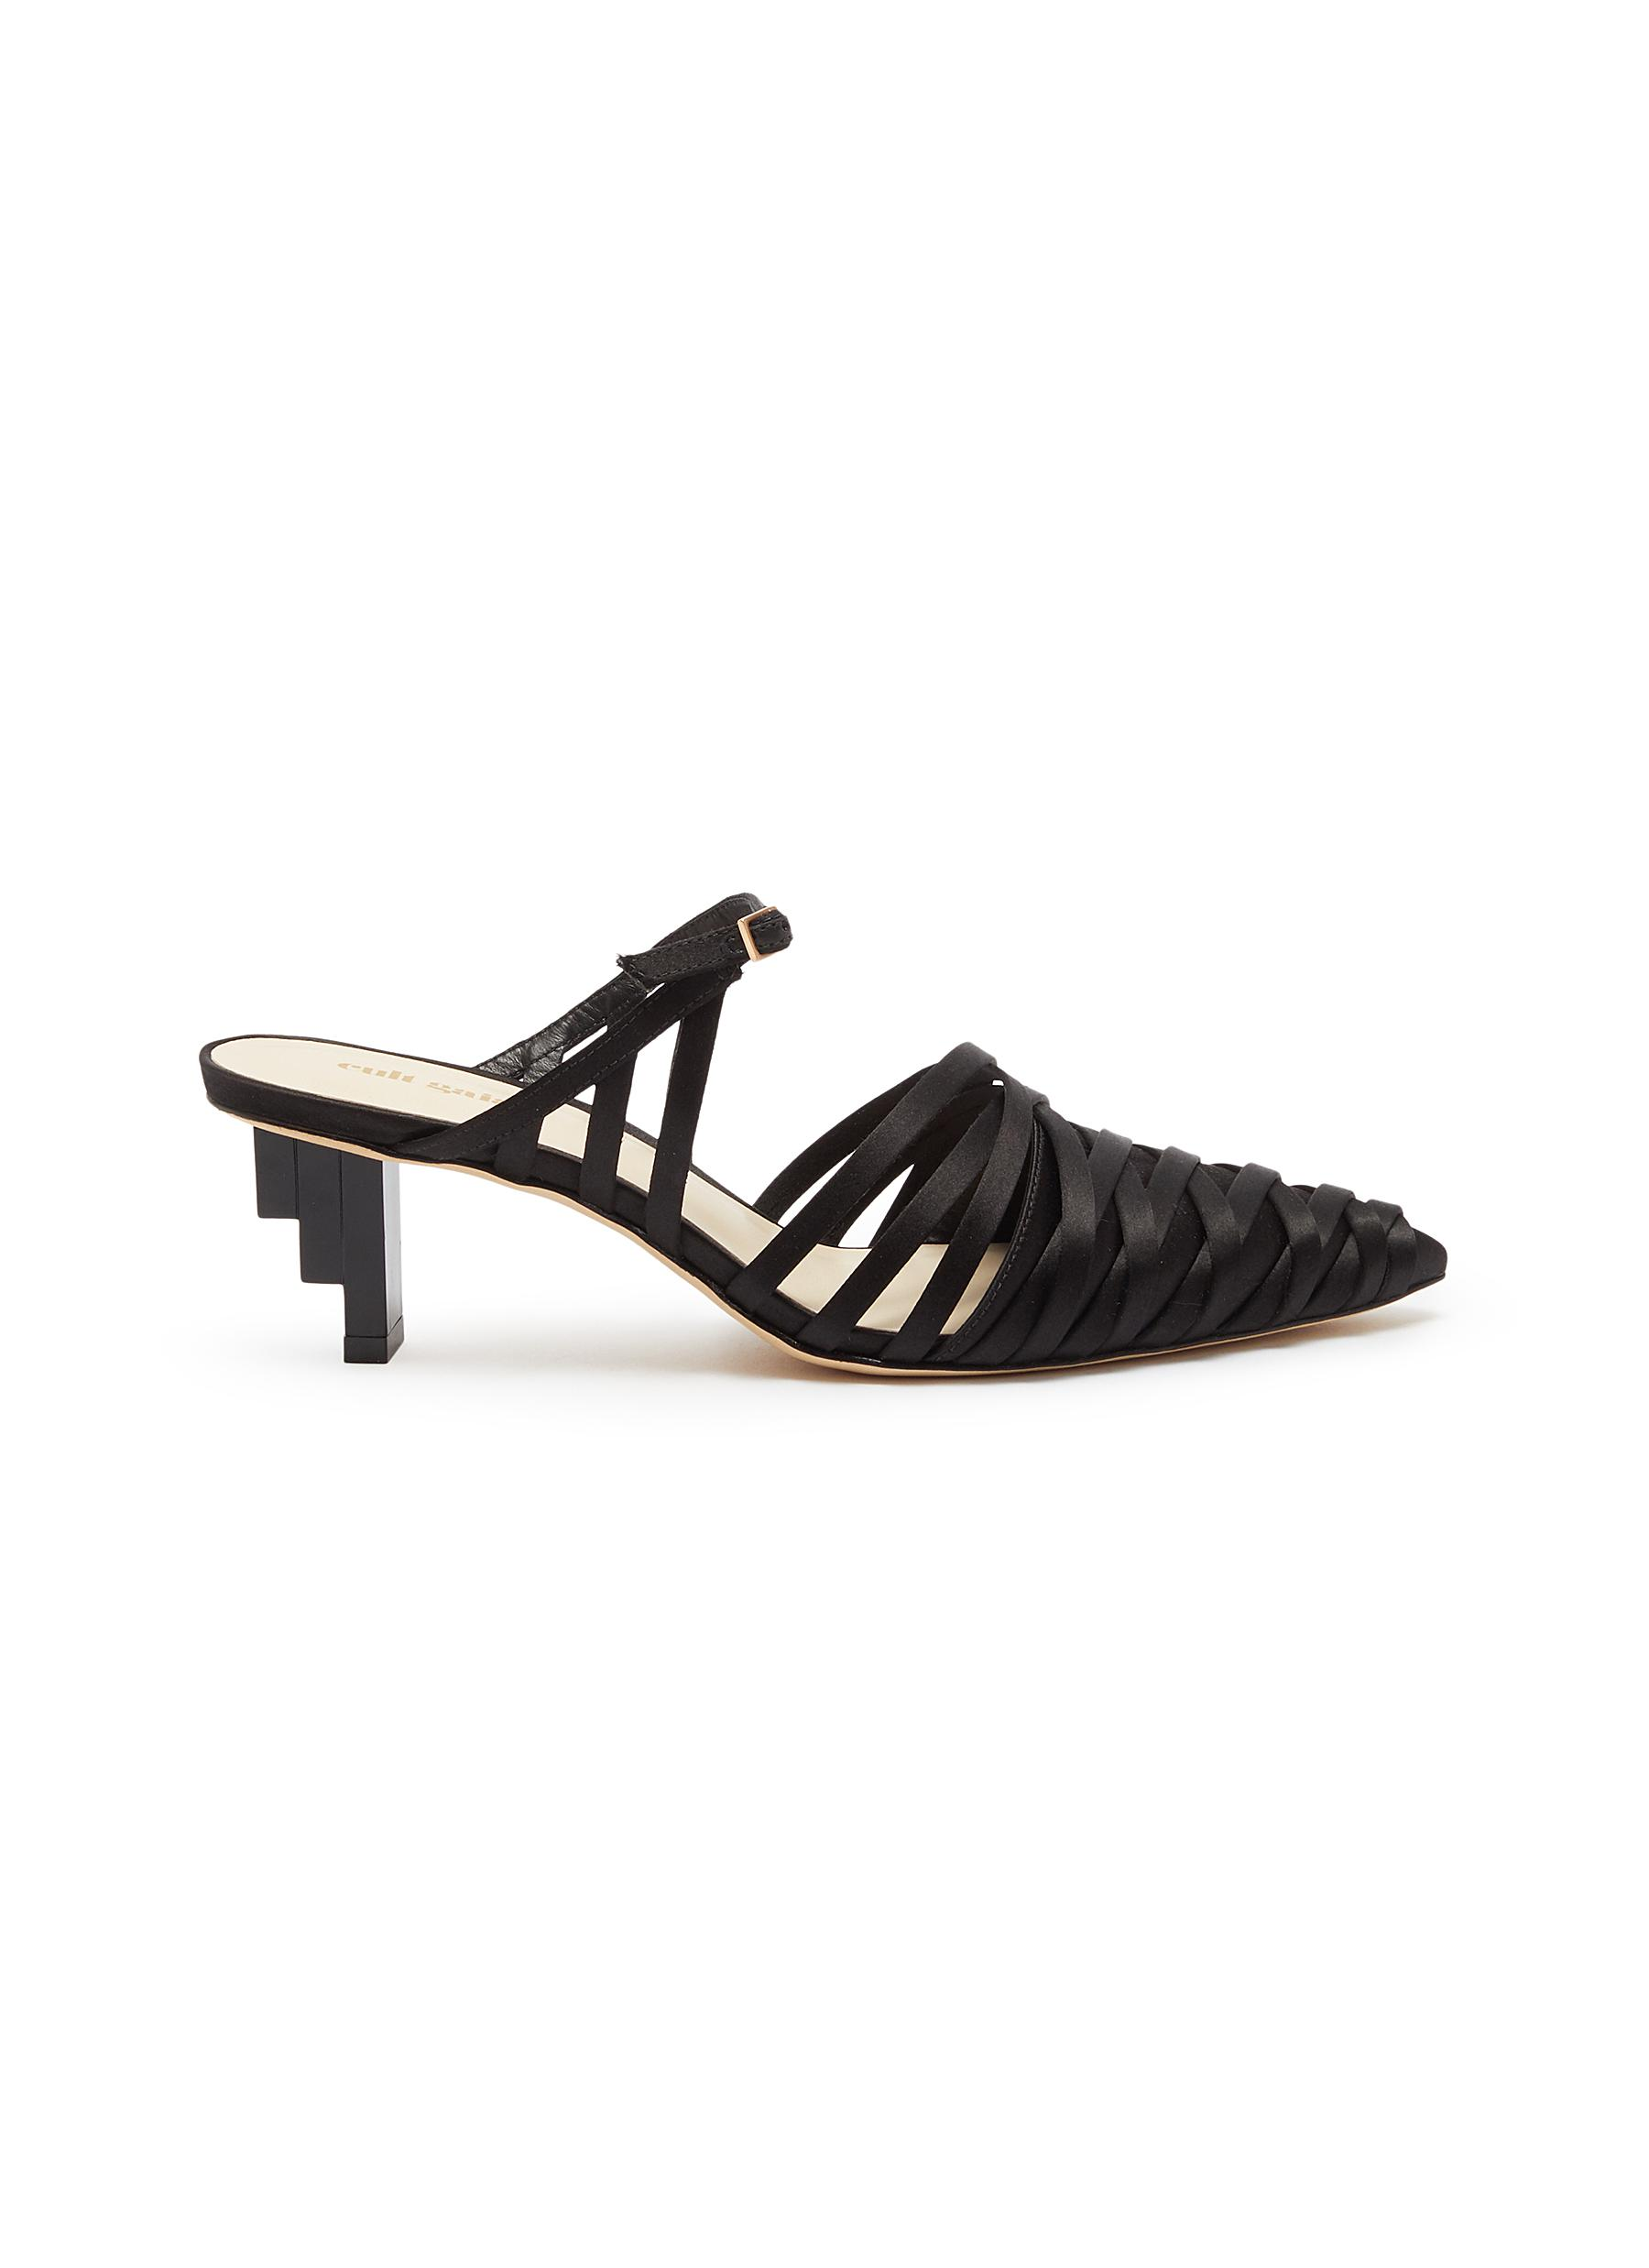 Liora staggered heel strappy satin mules by Cult Gaia